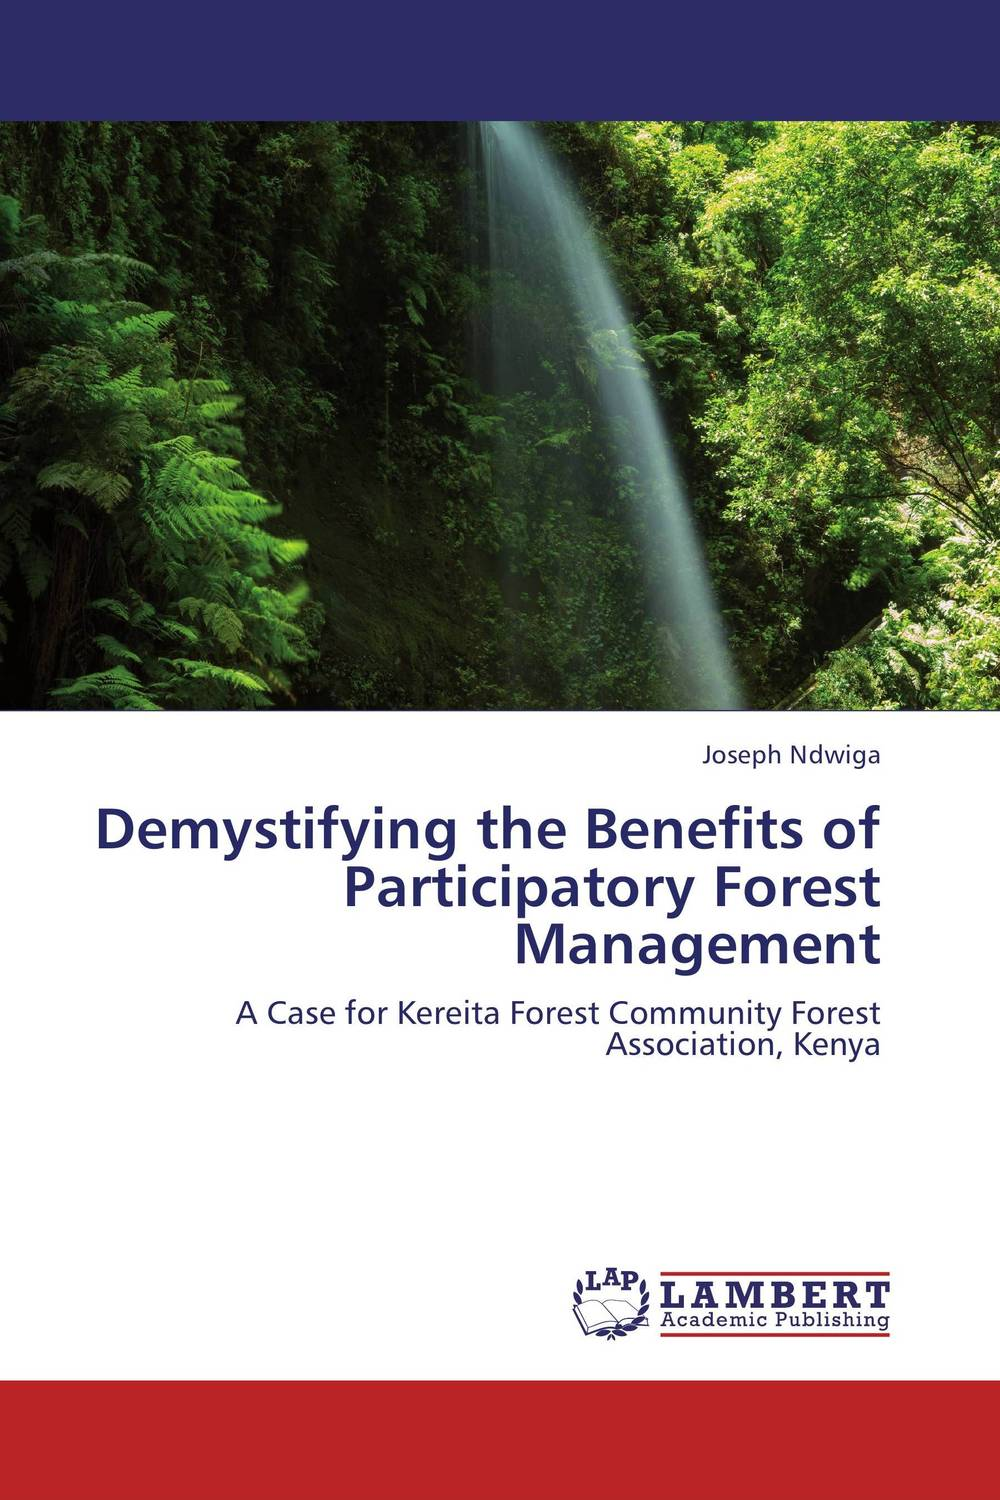 Demystifying the Benefits of Participatory Forest Management